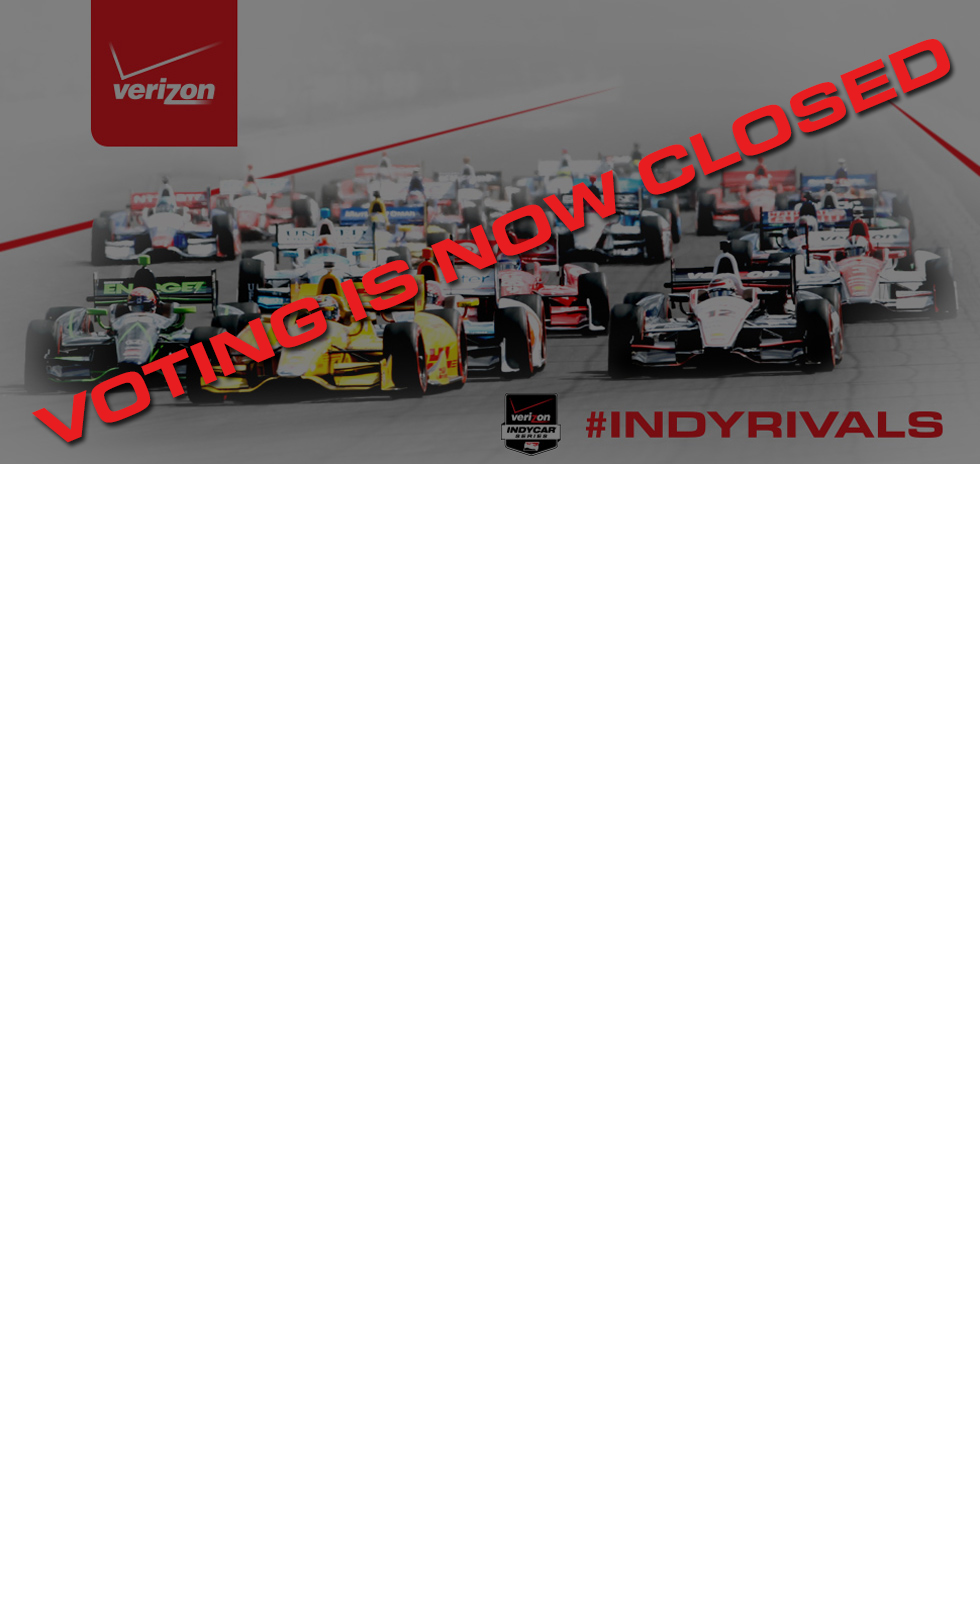 #IndyRivals Voting is now closed